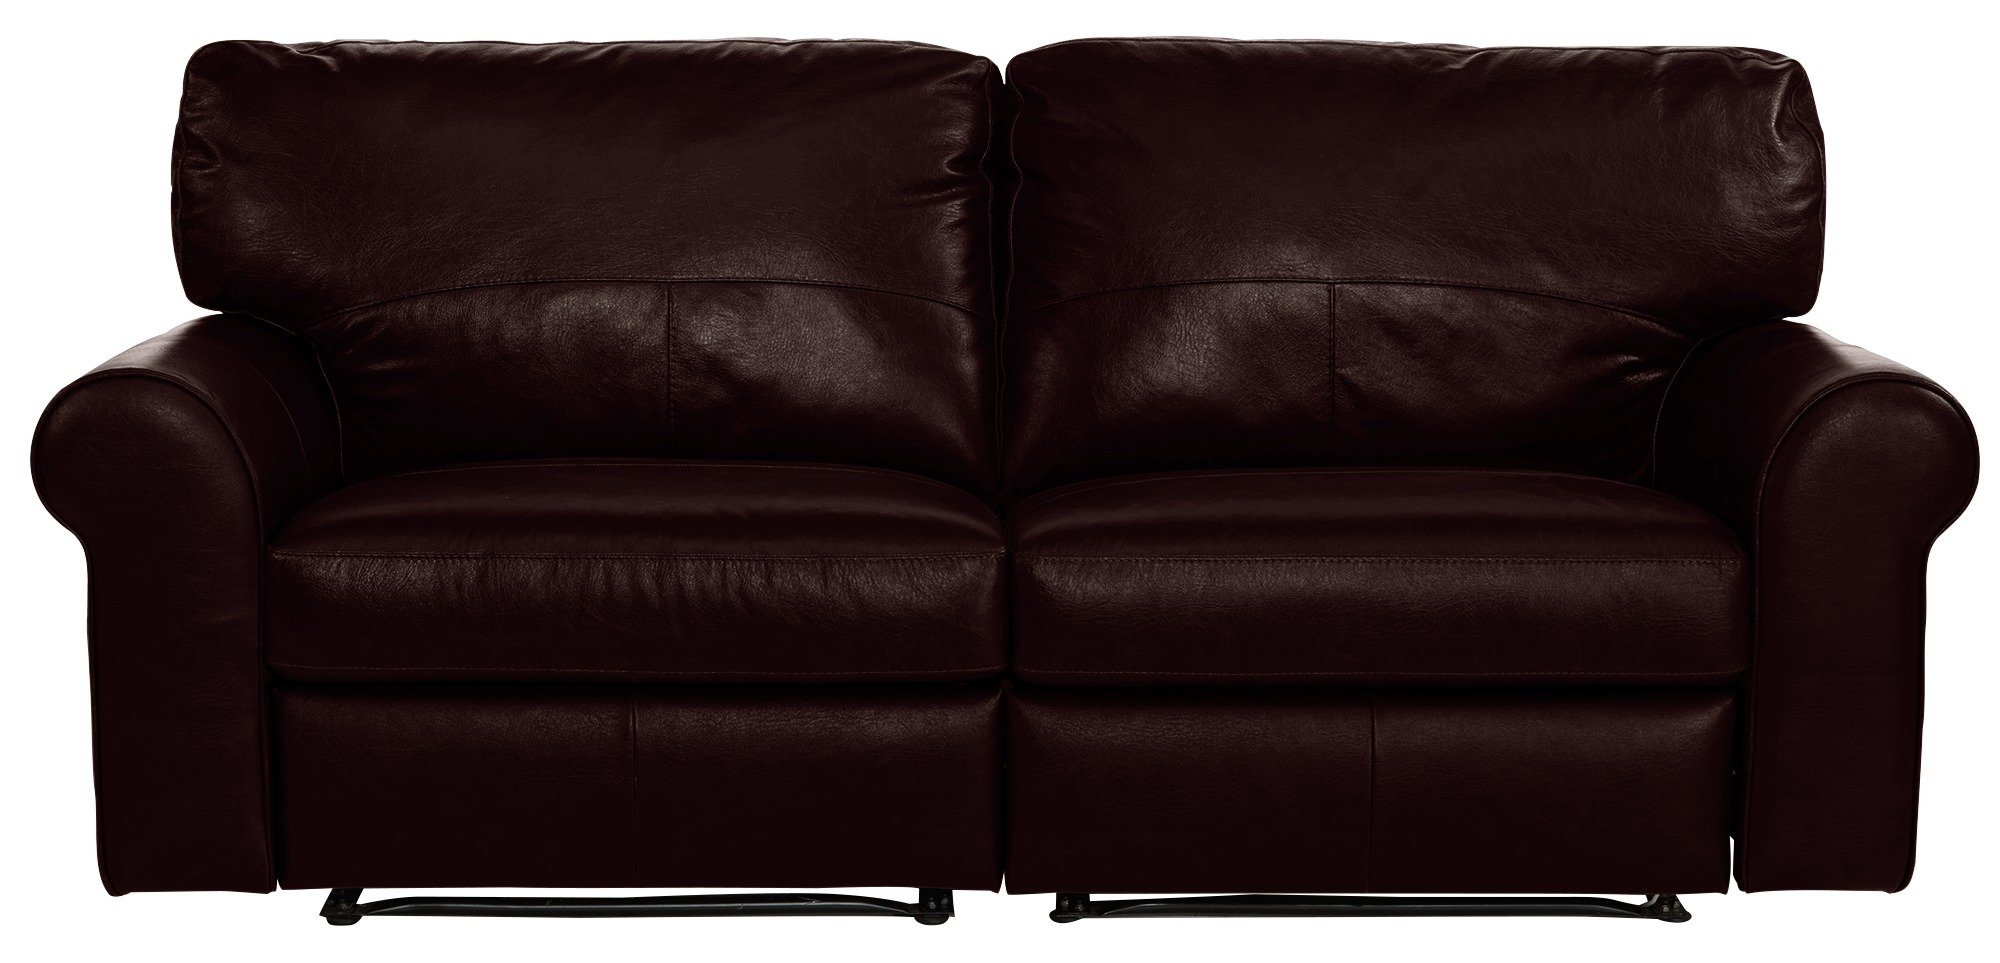 Heart of House Salisbury 3 Seater Recliner Sofa - Chocolate  sc 1 st  Argos & Buy Heart of House Salisbury 3 Seater Recliner Sofa - Chocolate at ... islam-shia.org